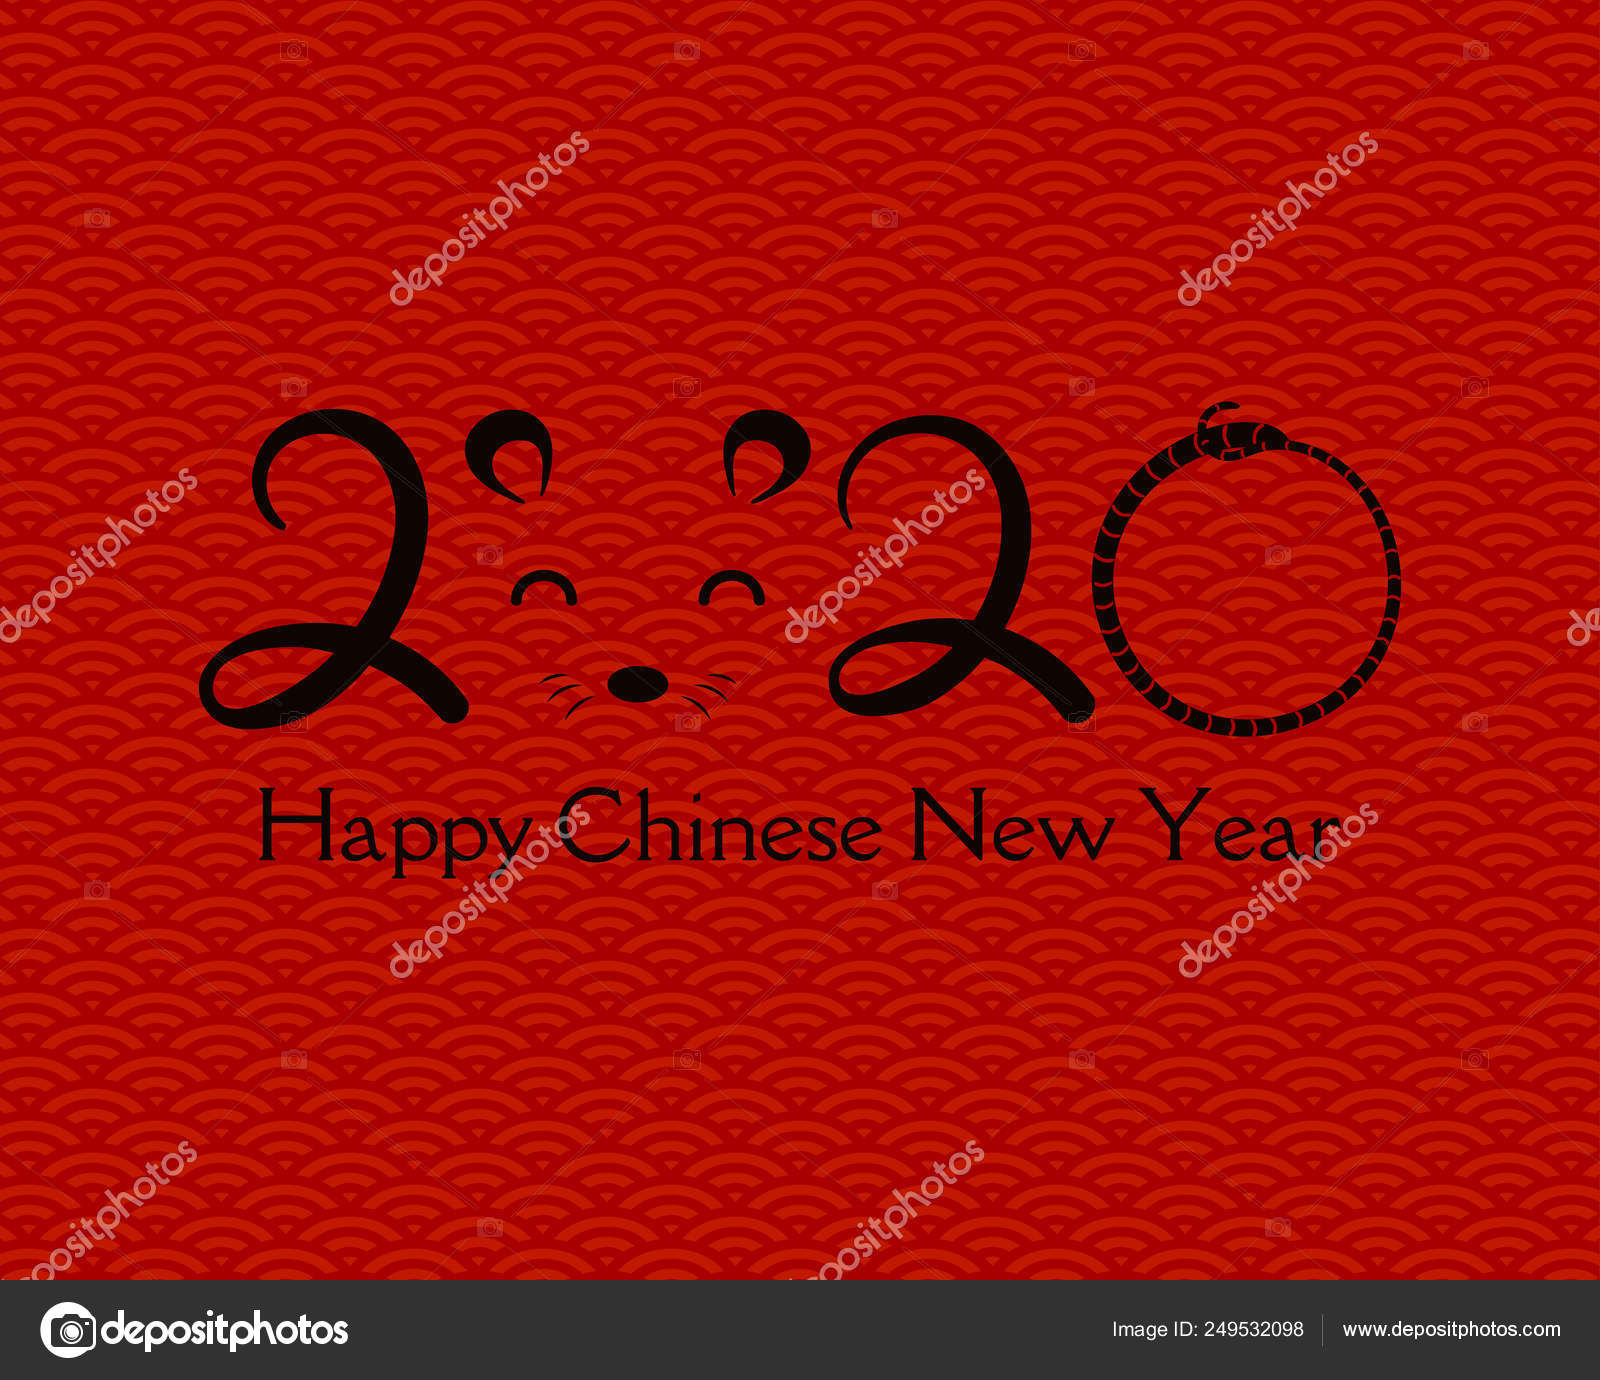 Chinese New Year Holiday 2020.2020 Chinese New Year Greeting Card Numbers Rat Face Red